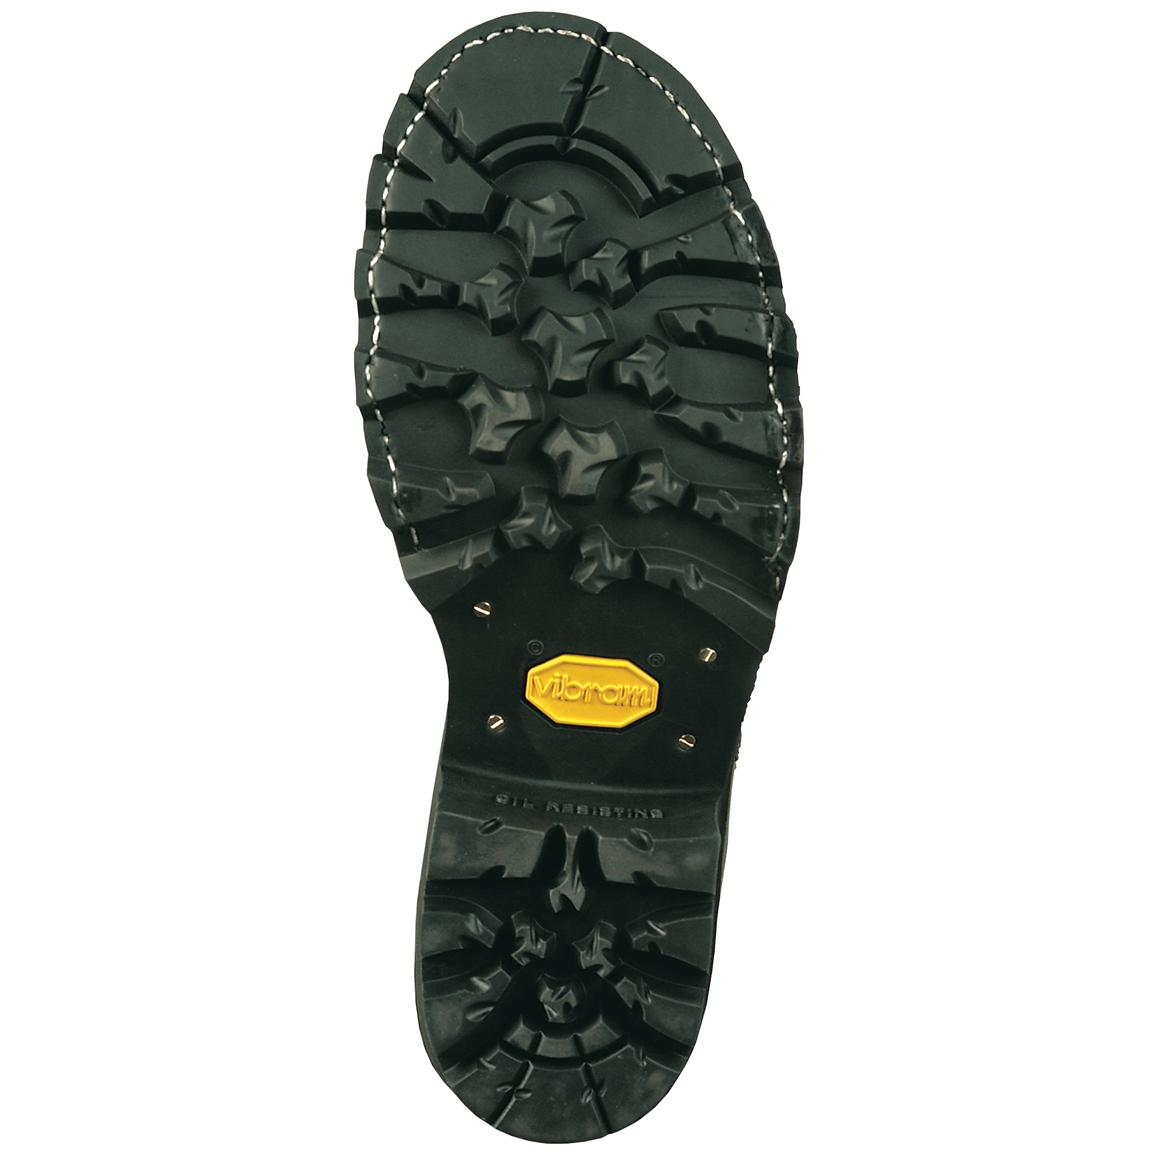 Vibram® rubber lug outsole for slip resistance